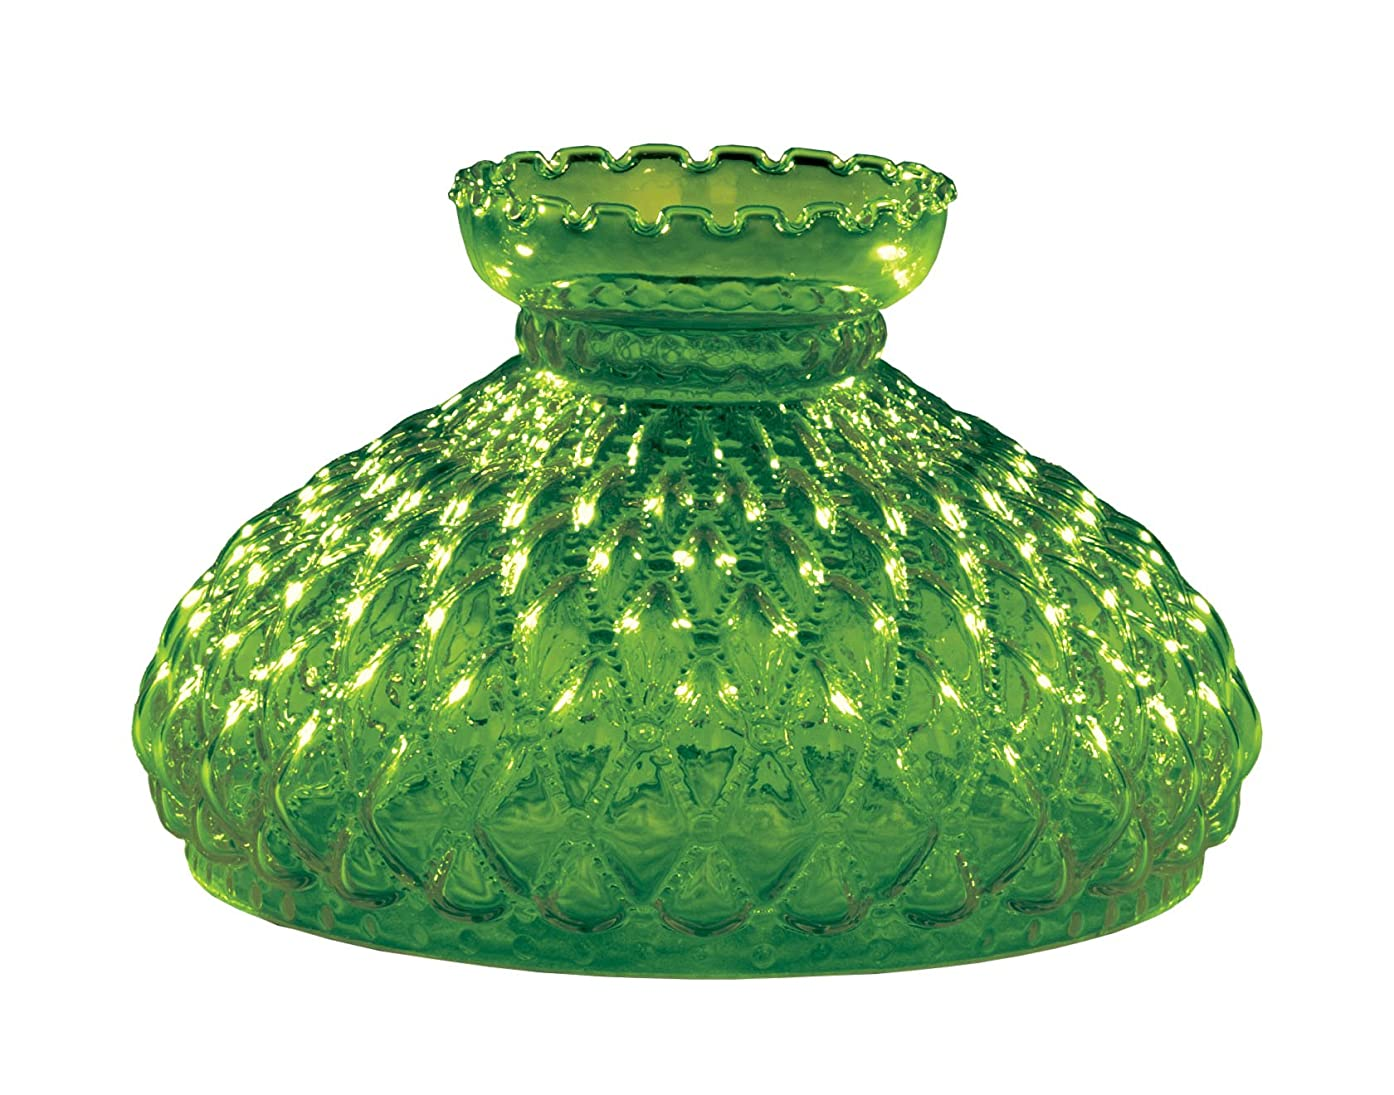 B&P Lamp 10 Inch Fitter, Dark Green Quilted Lamp Shade